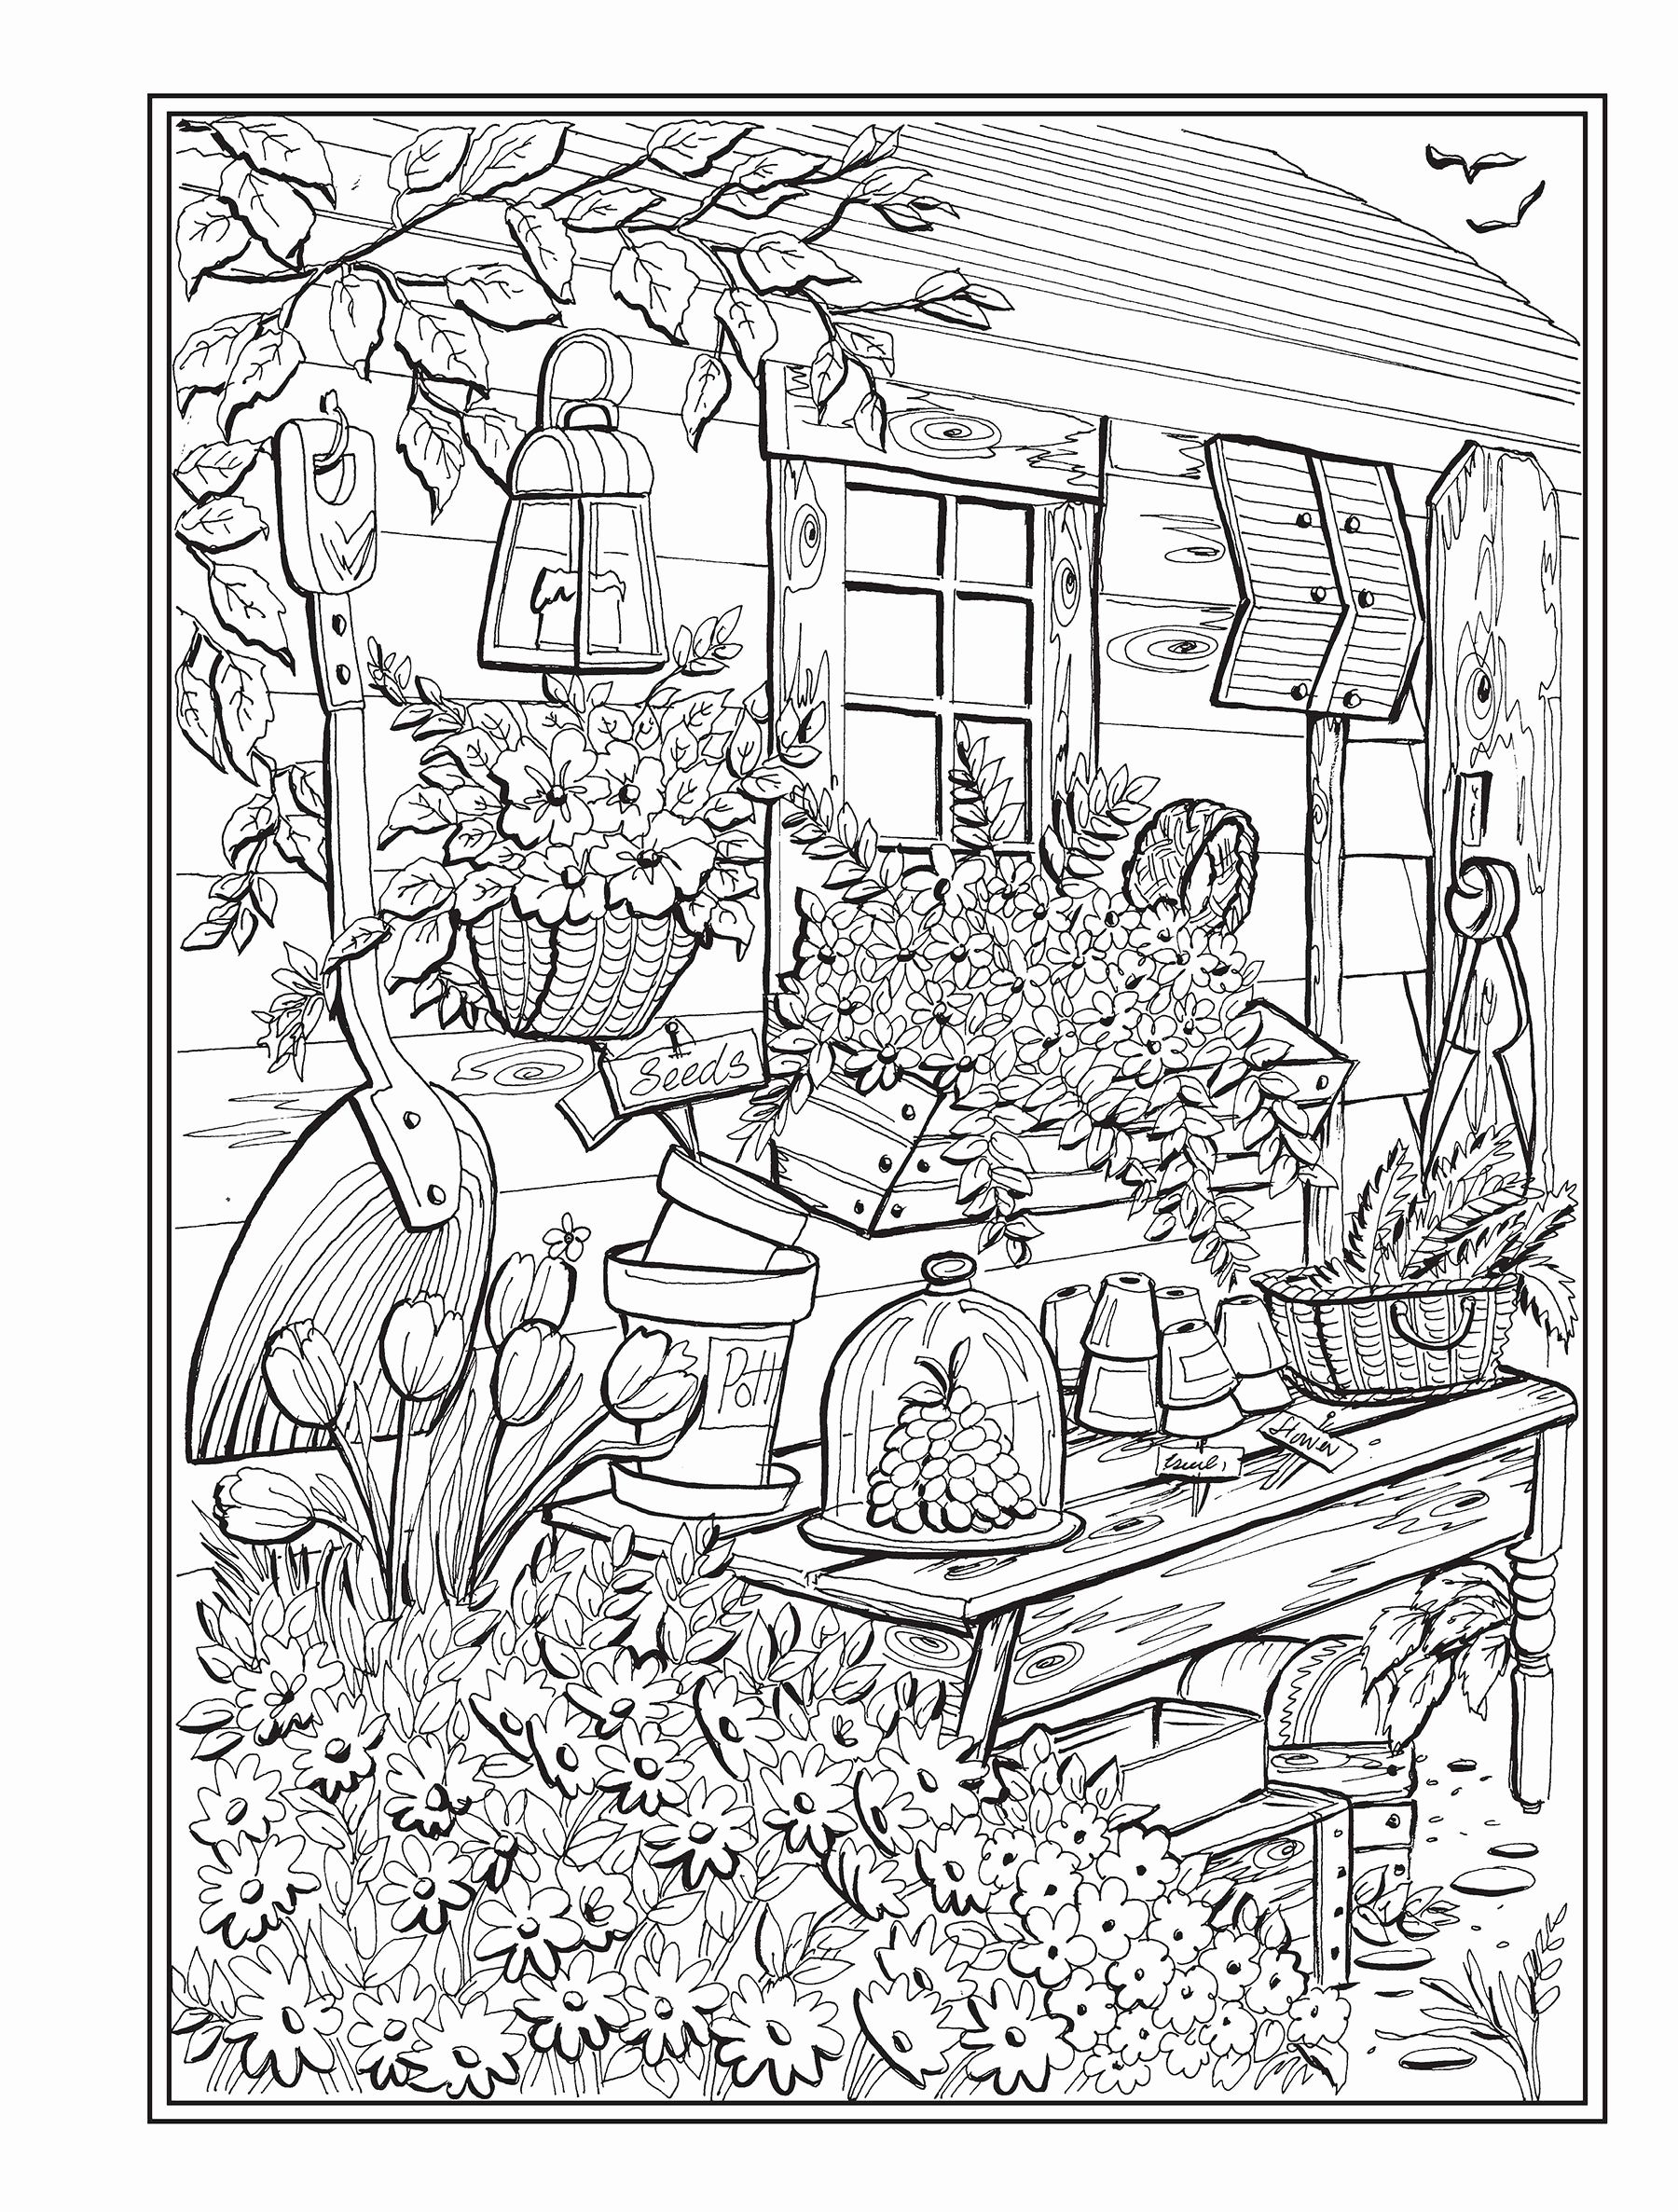 Dragon City Coloring Pages Fresh Top 12 Splendiferous Creative Haven Country Charm Coloring In 2020 Creative Haven Coloring Books Coloring Books Coloring Pages